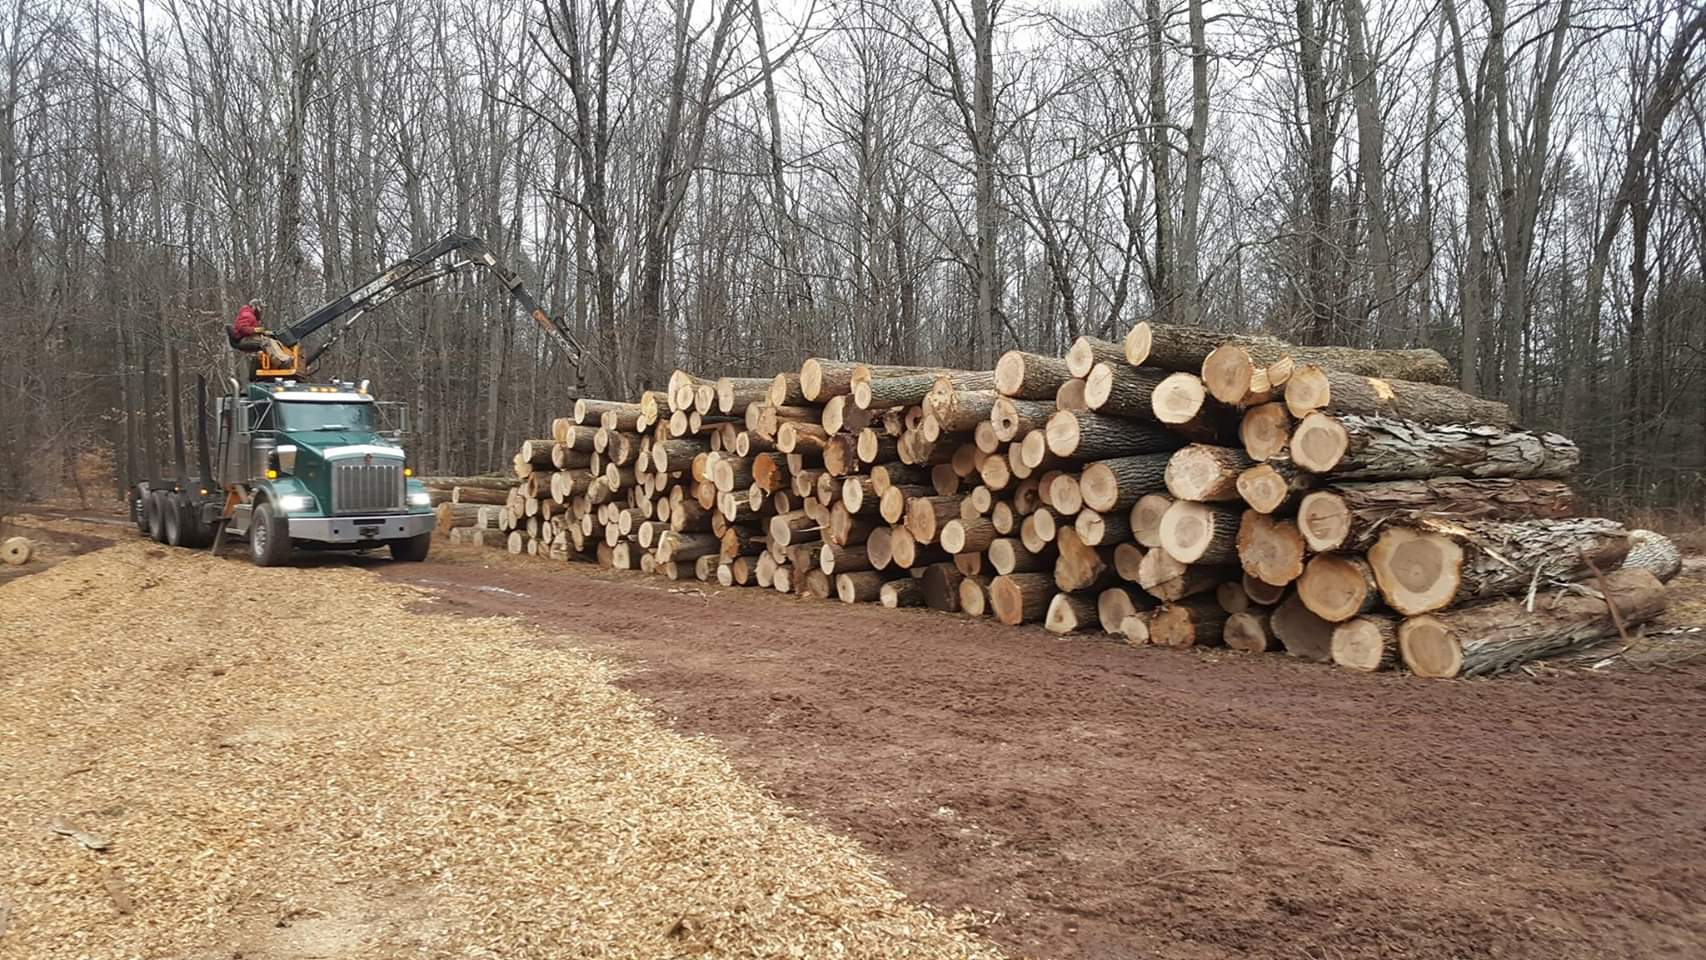 large logs stacked together